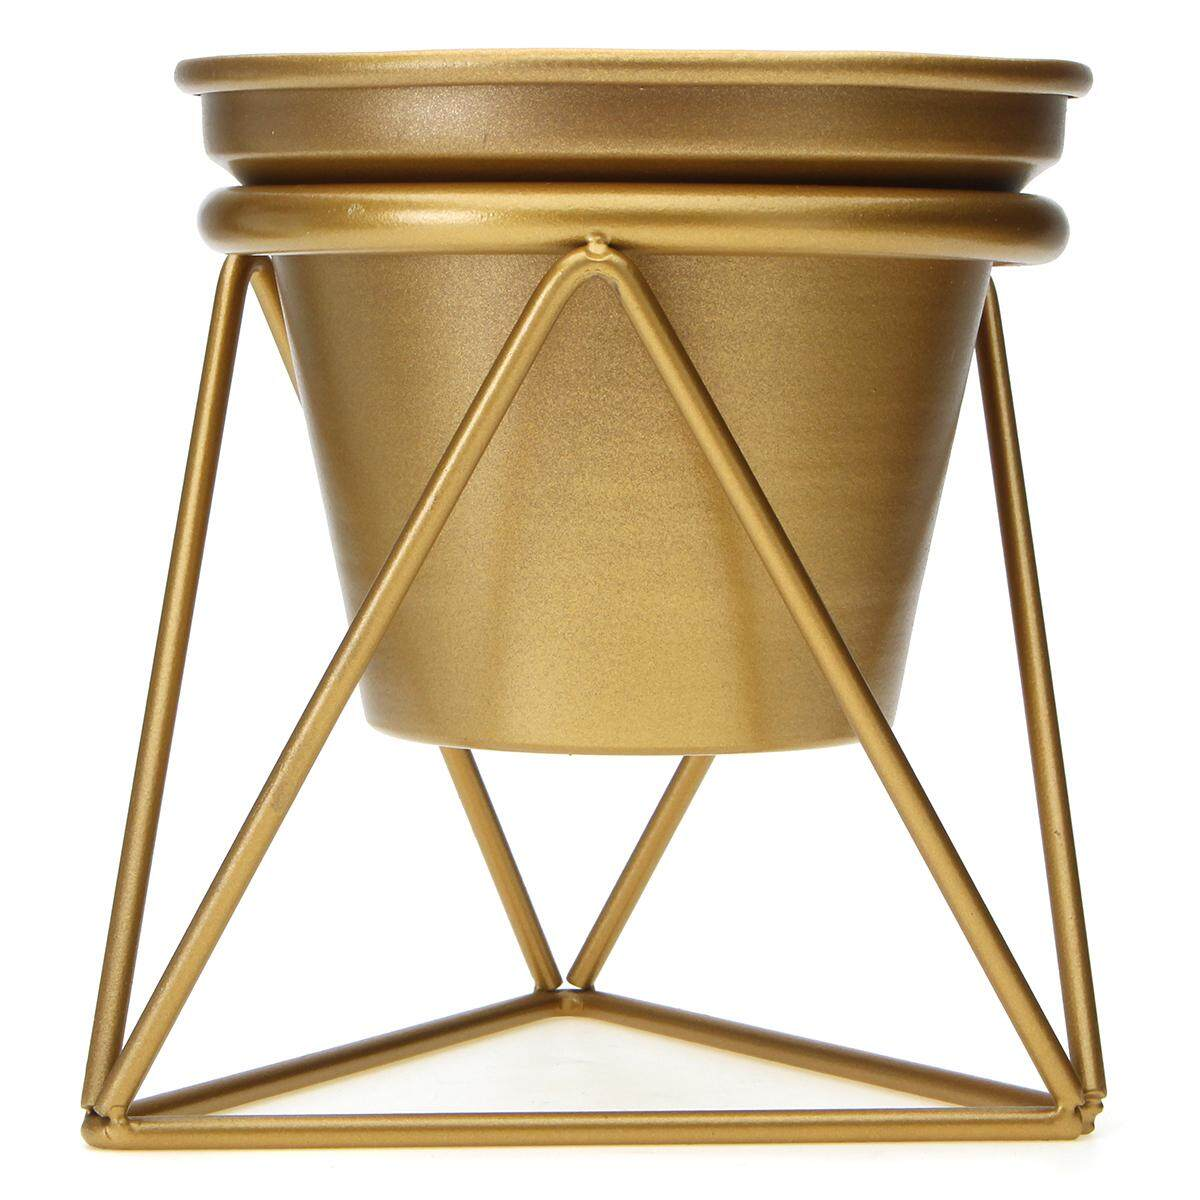 Golden Flower Pot Plant Display Stand Planter Rack Shelves Organizer Garden